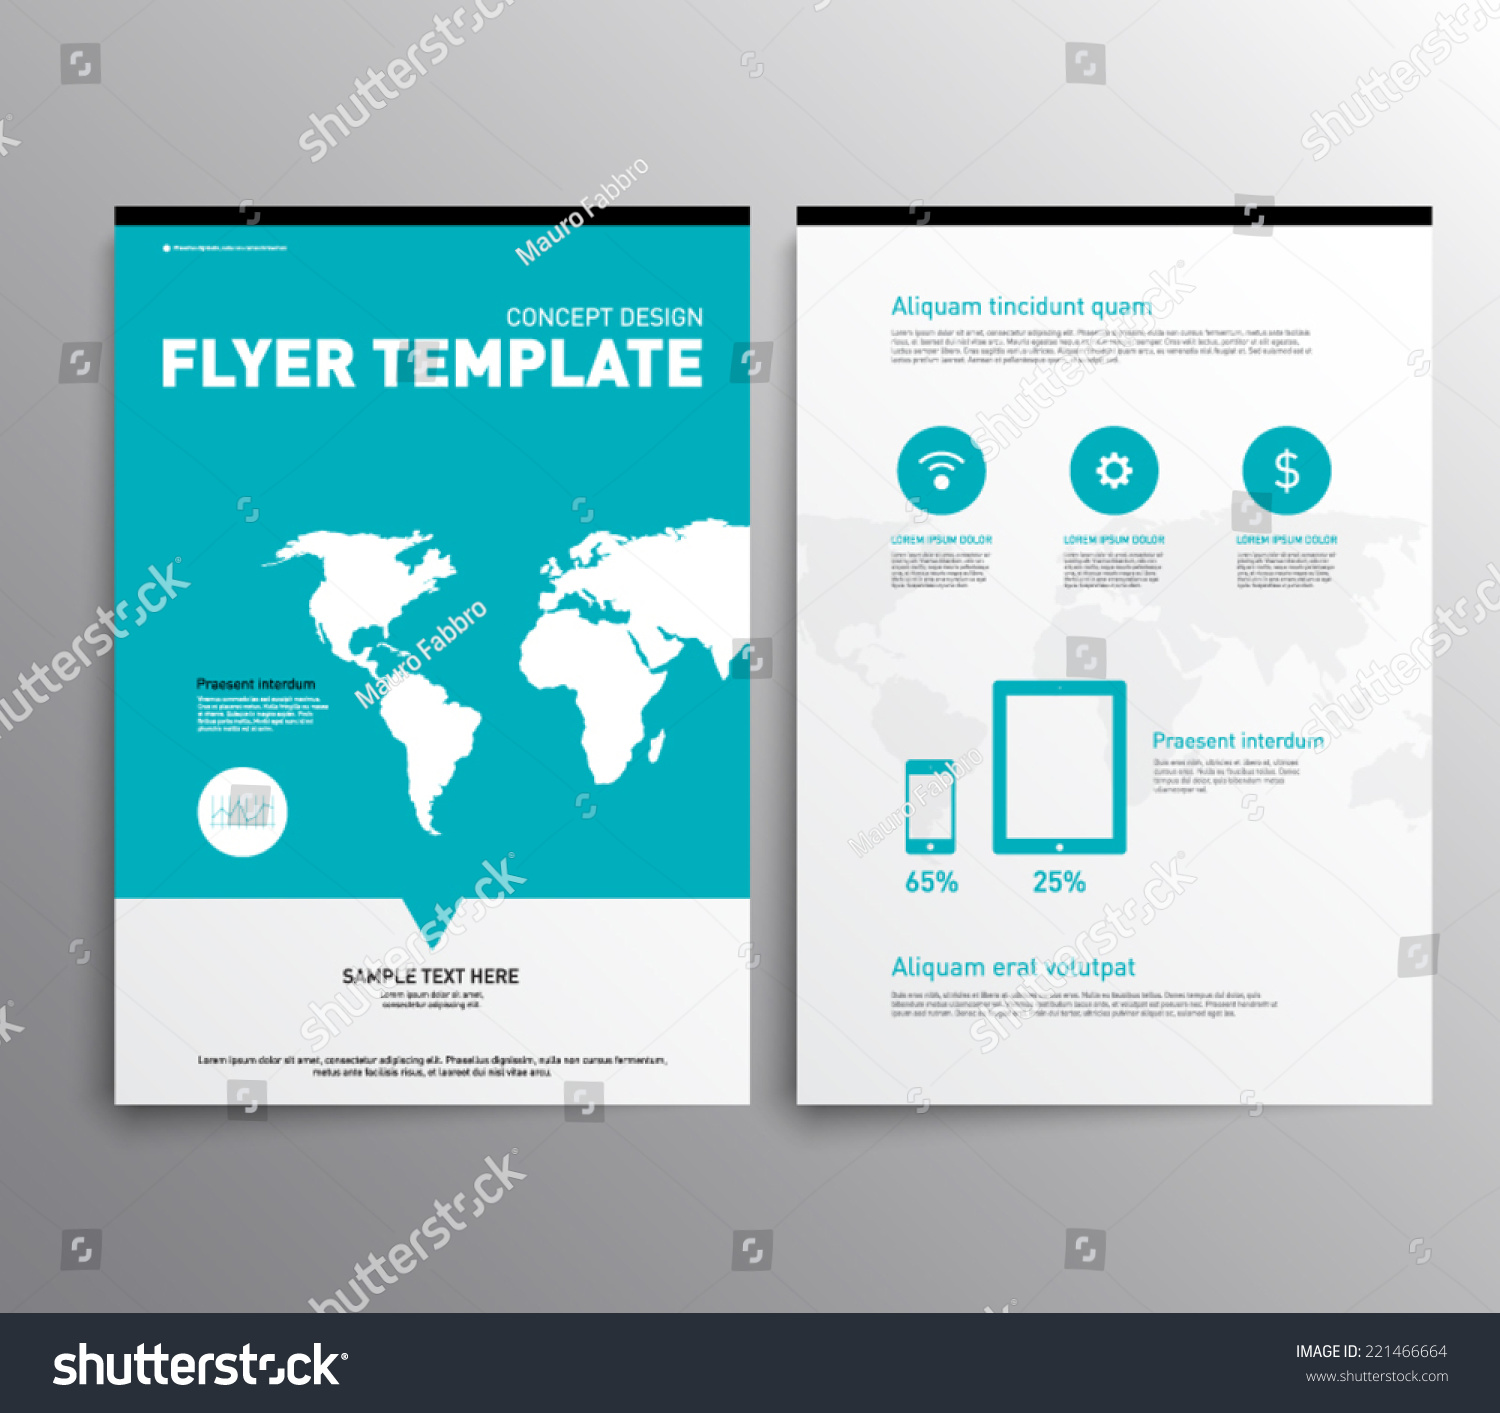 abstract modern cover brochure flyer design stock vector  abstract modern cover brochure flyer design template elegant flat design style vector